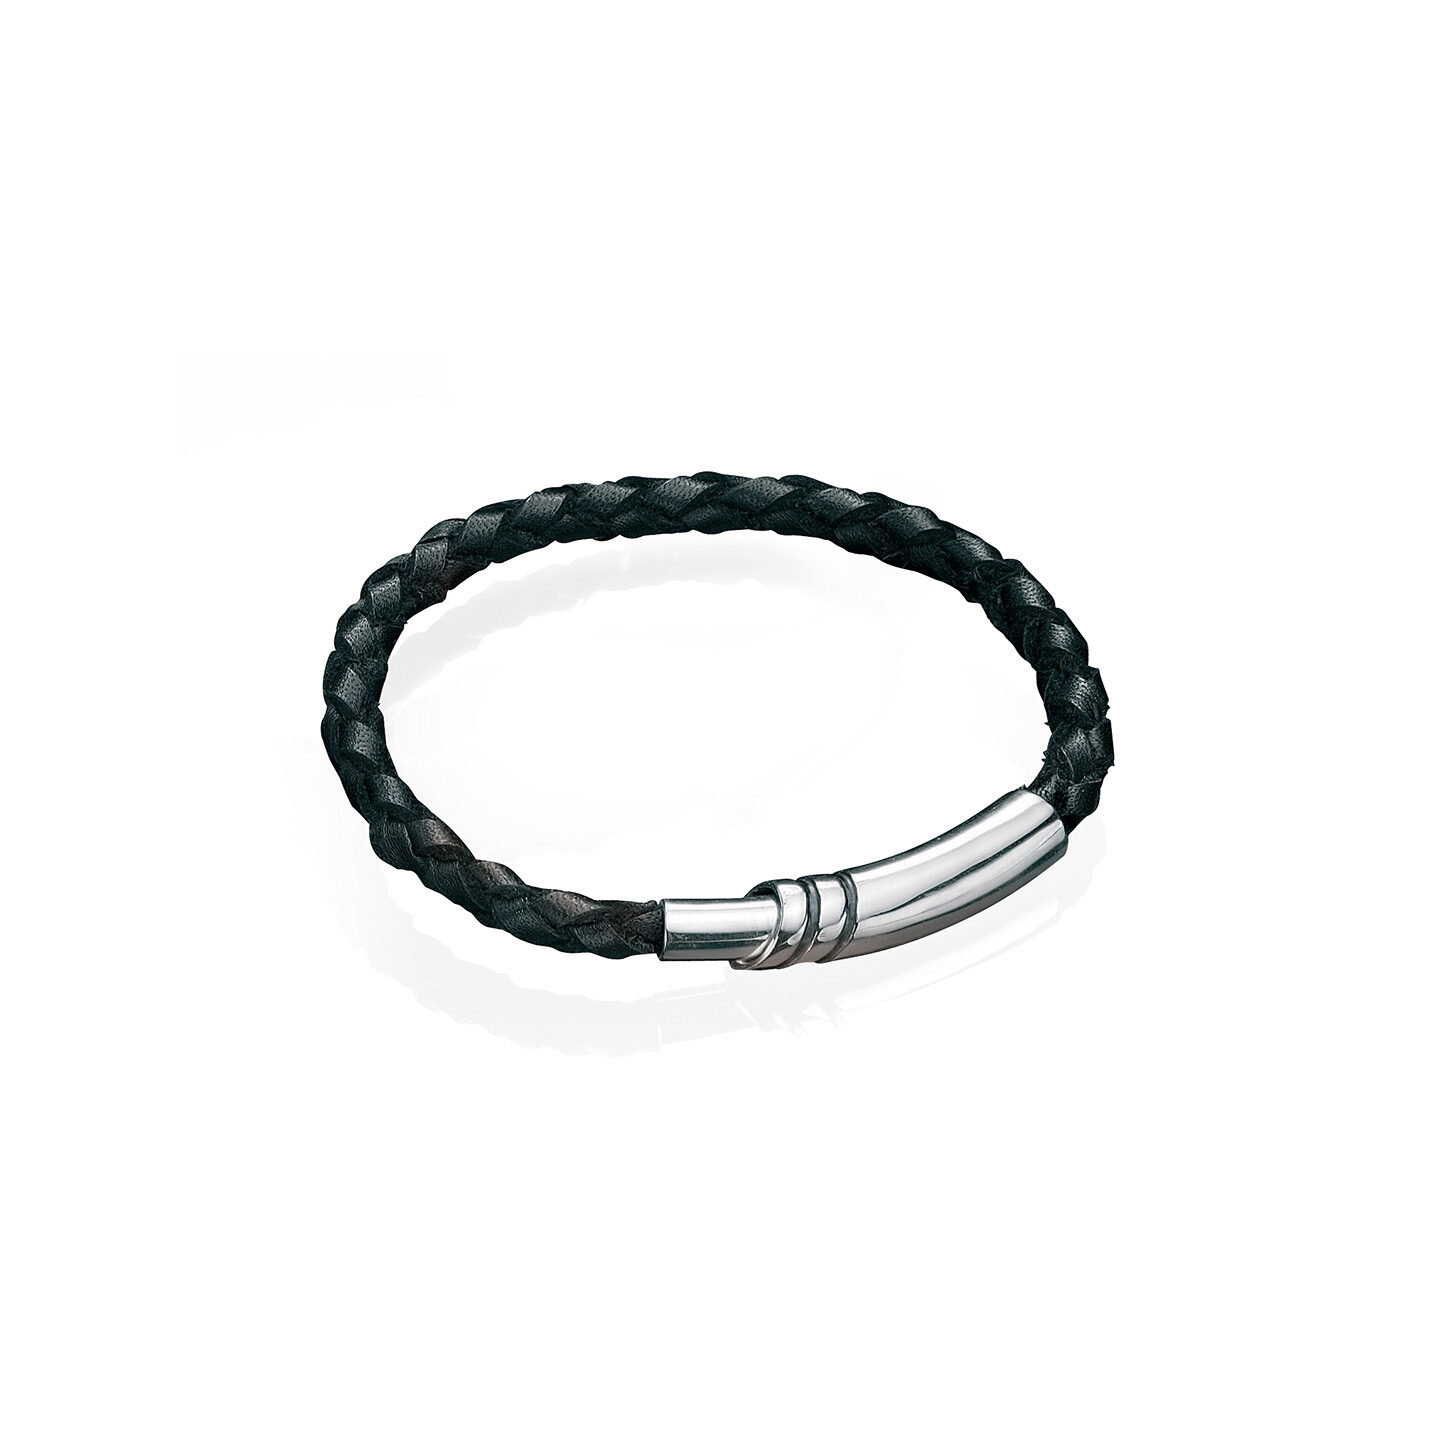 This narrow woven black leather gents bracelet has a sterling silver magnetic clasp.  Great for layering with another bracelet or a watch.